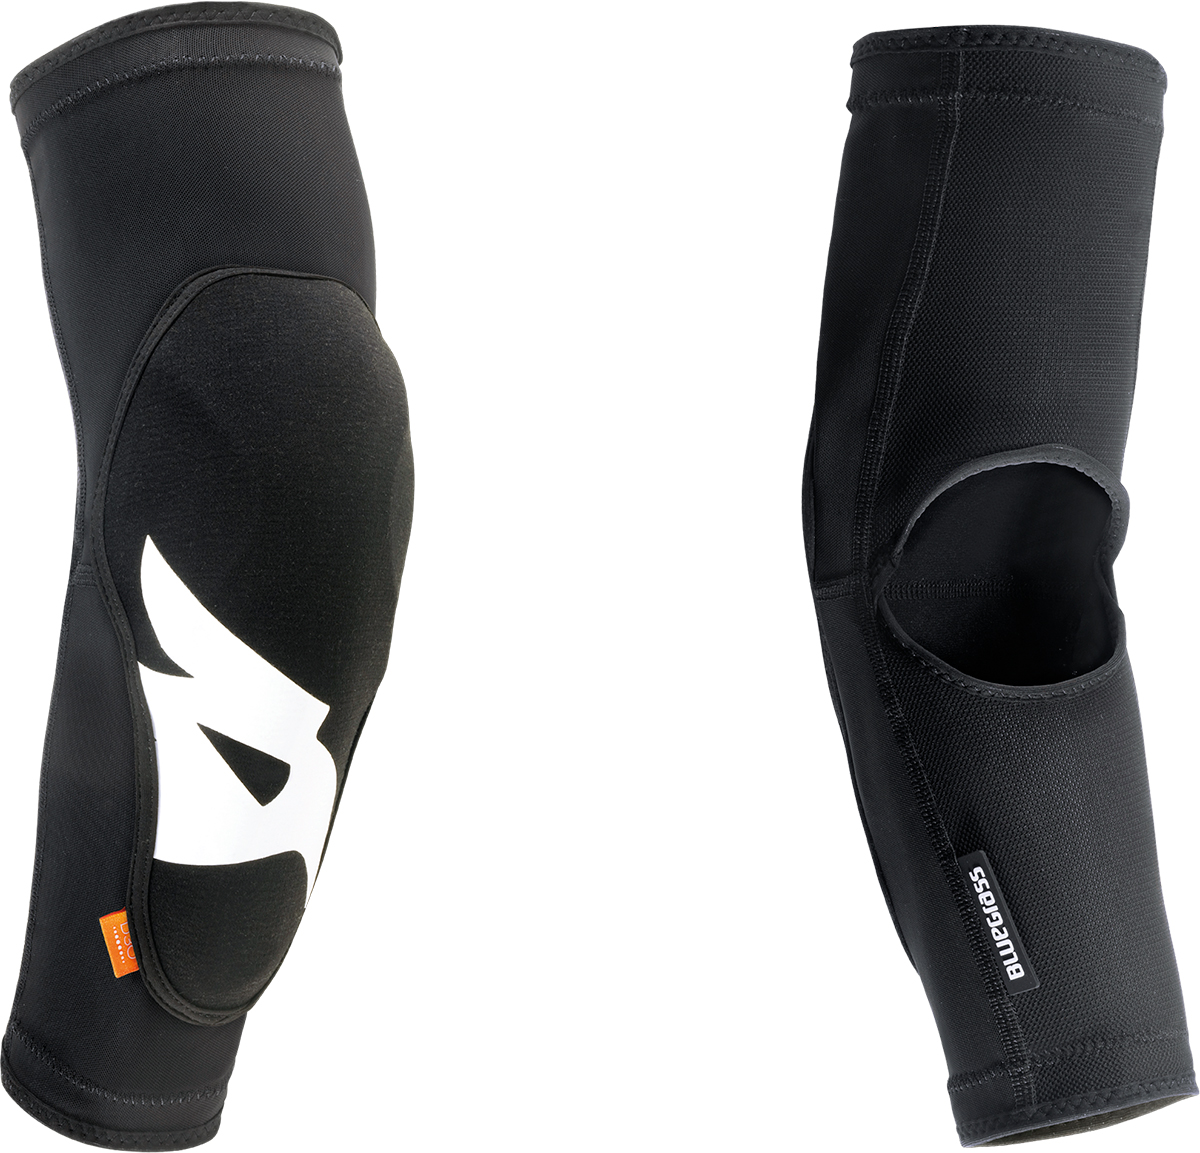 Bluegrass Skinny D30 Elbow Guards | Amour